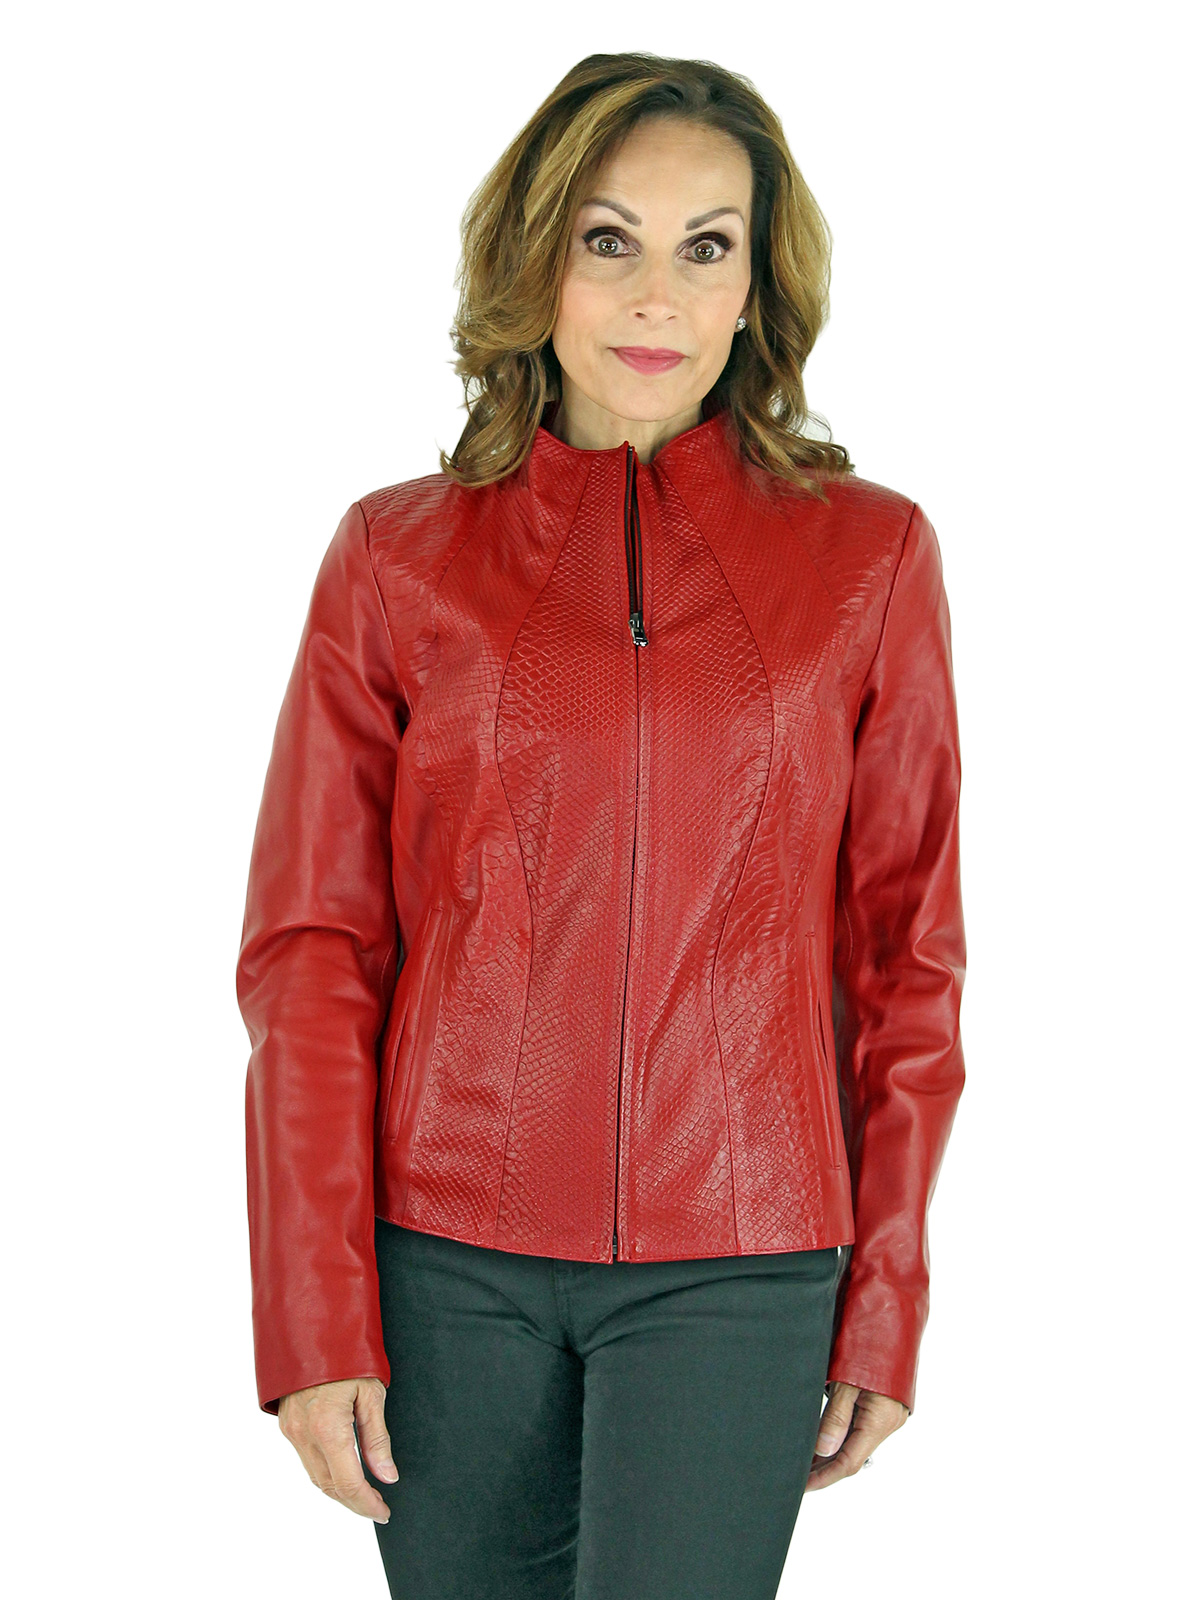 Woman's Red Python Printed Leather Zipper Jacket